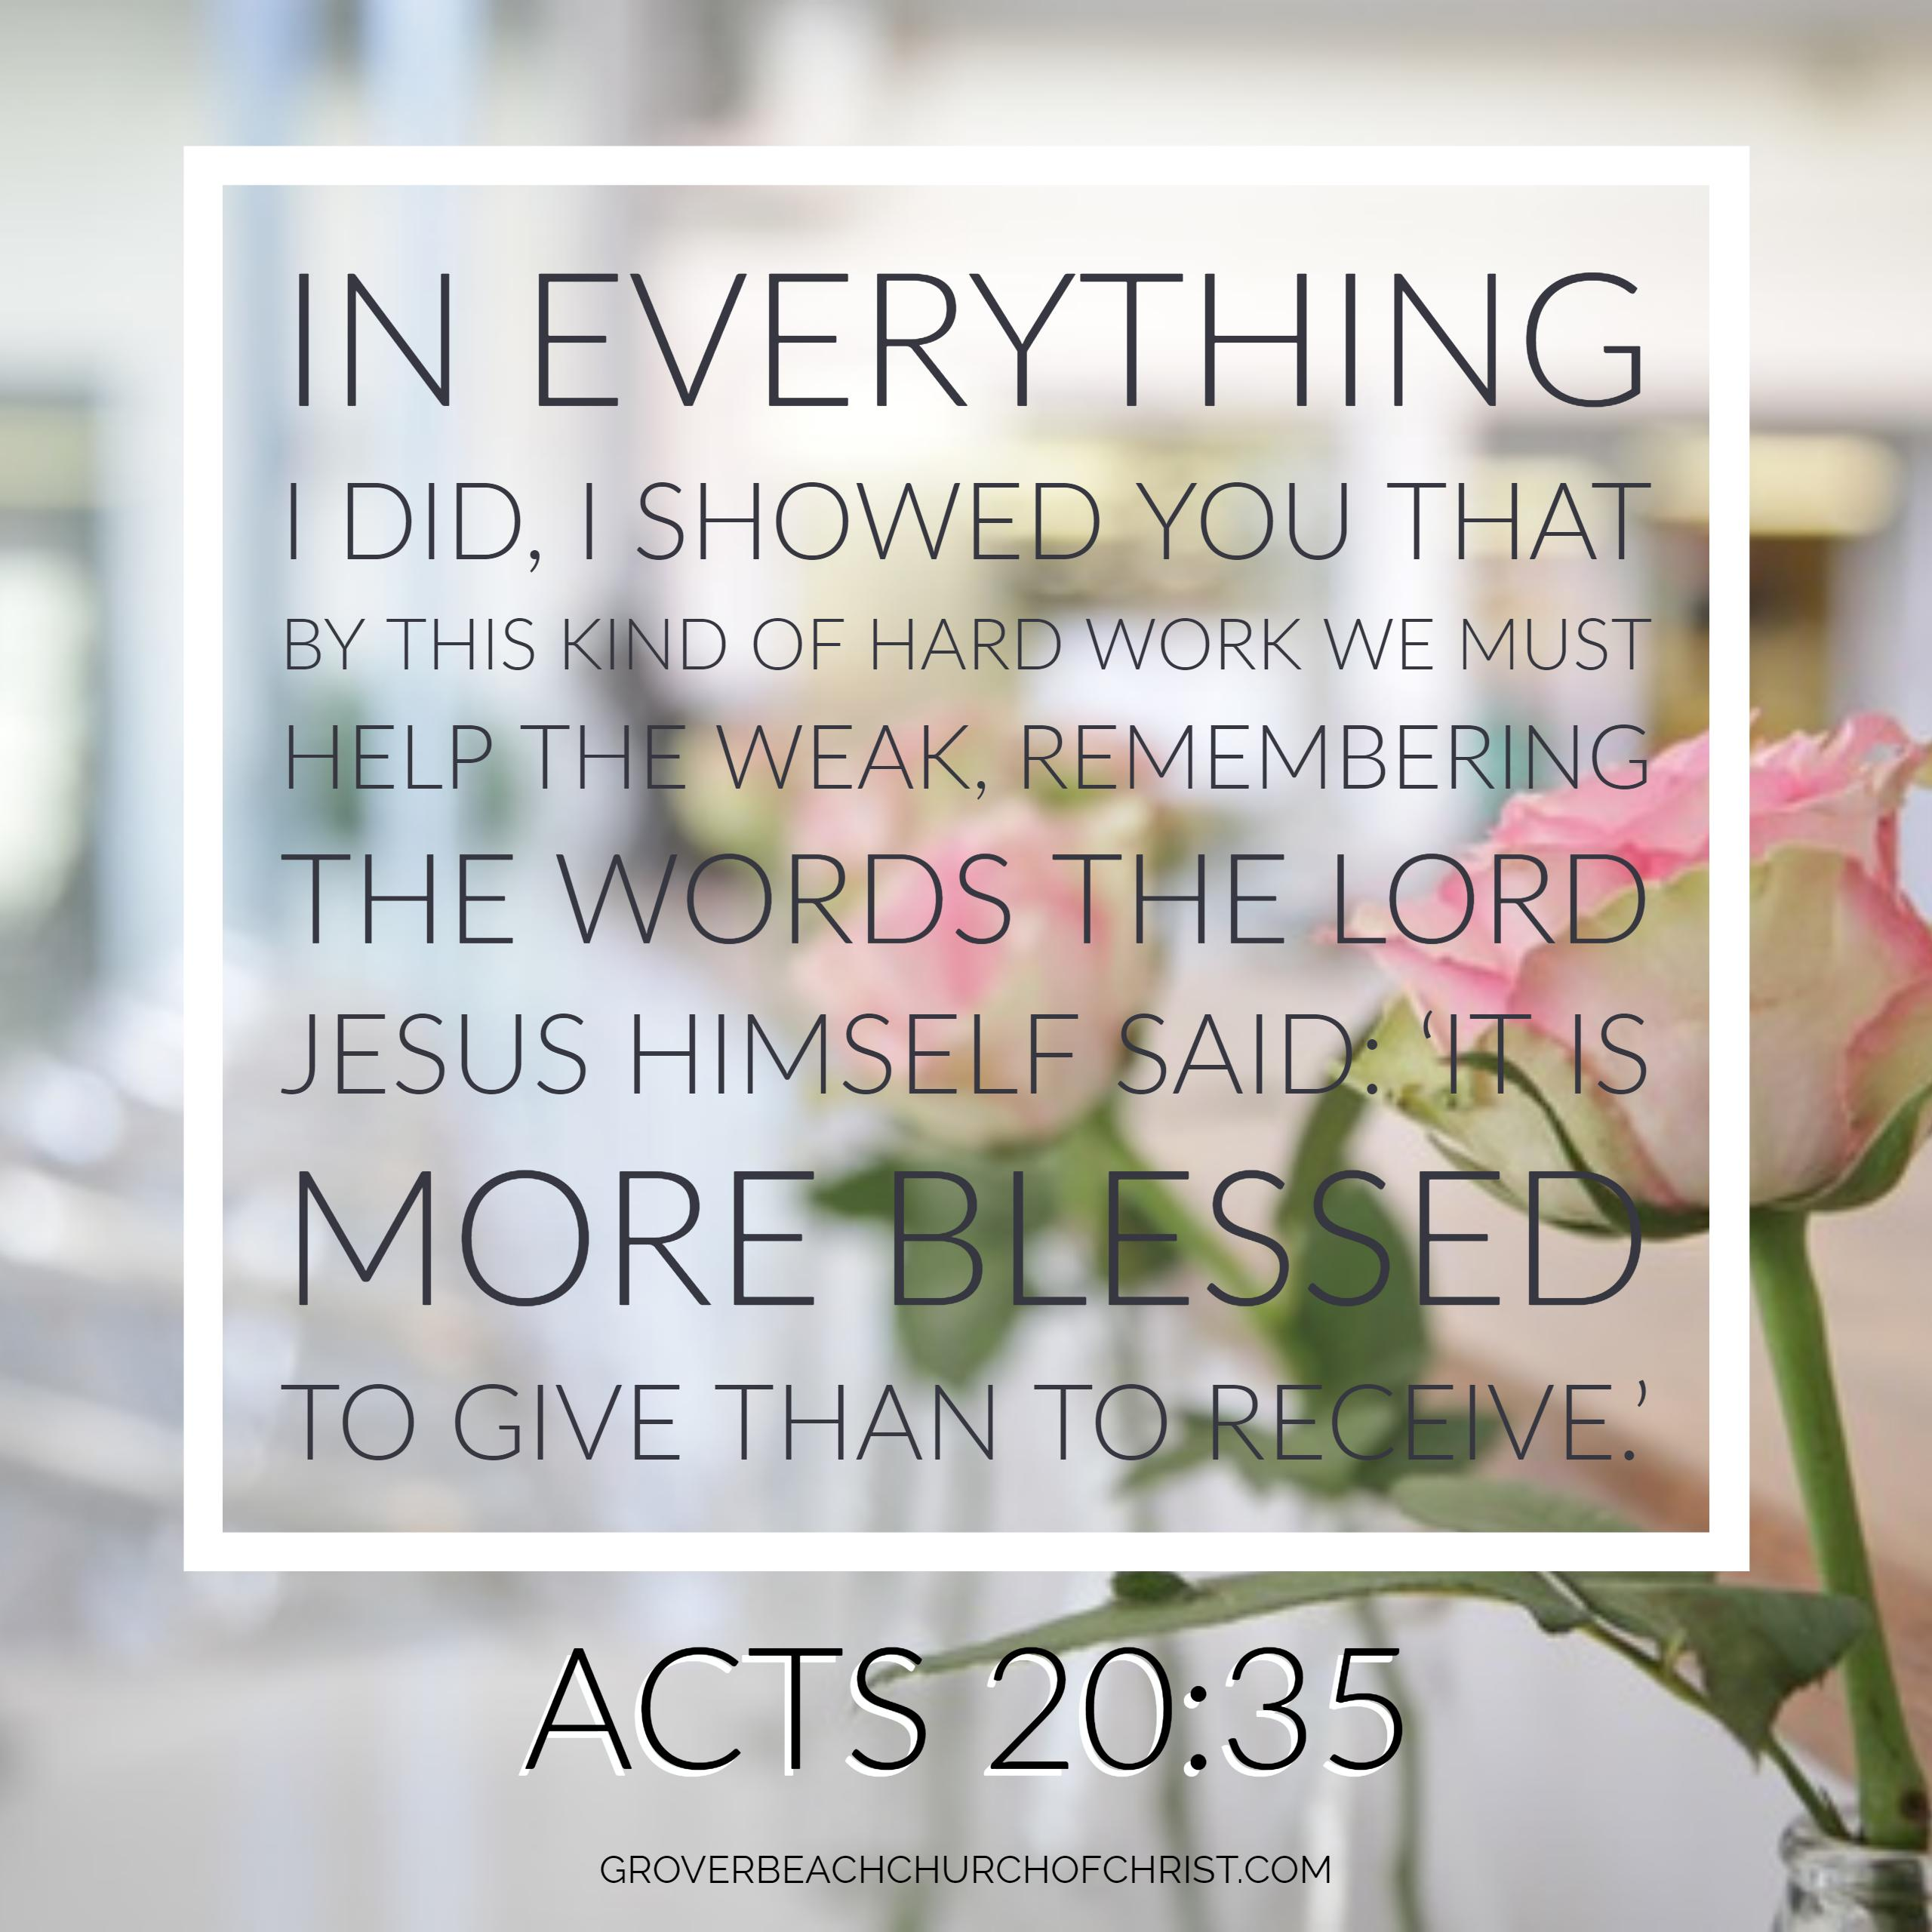 acts-20-35-more-blessed-to-give-than-receive